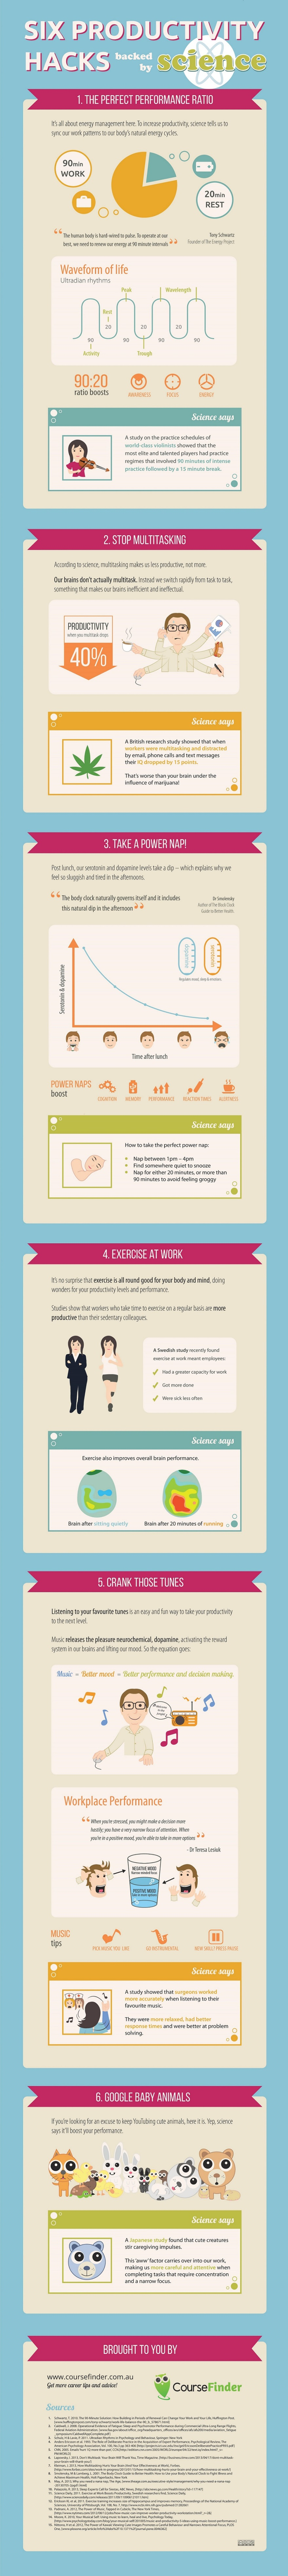 Productivity_Infographic_by_CourseFinder1